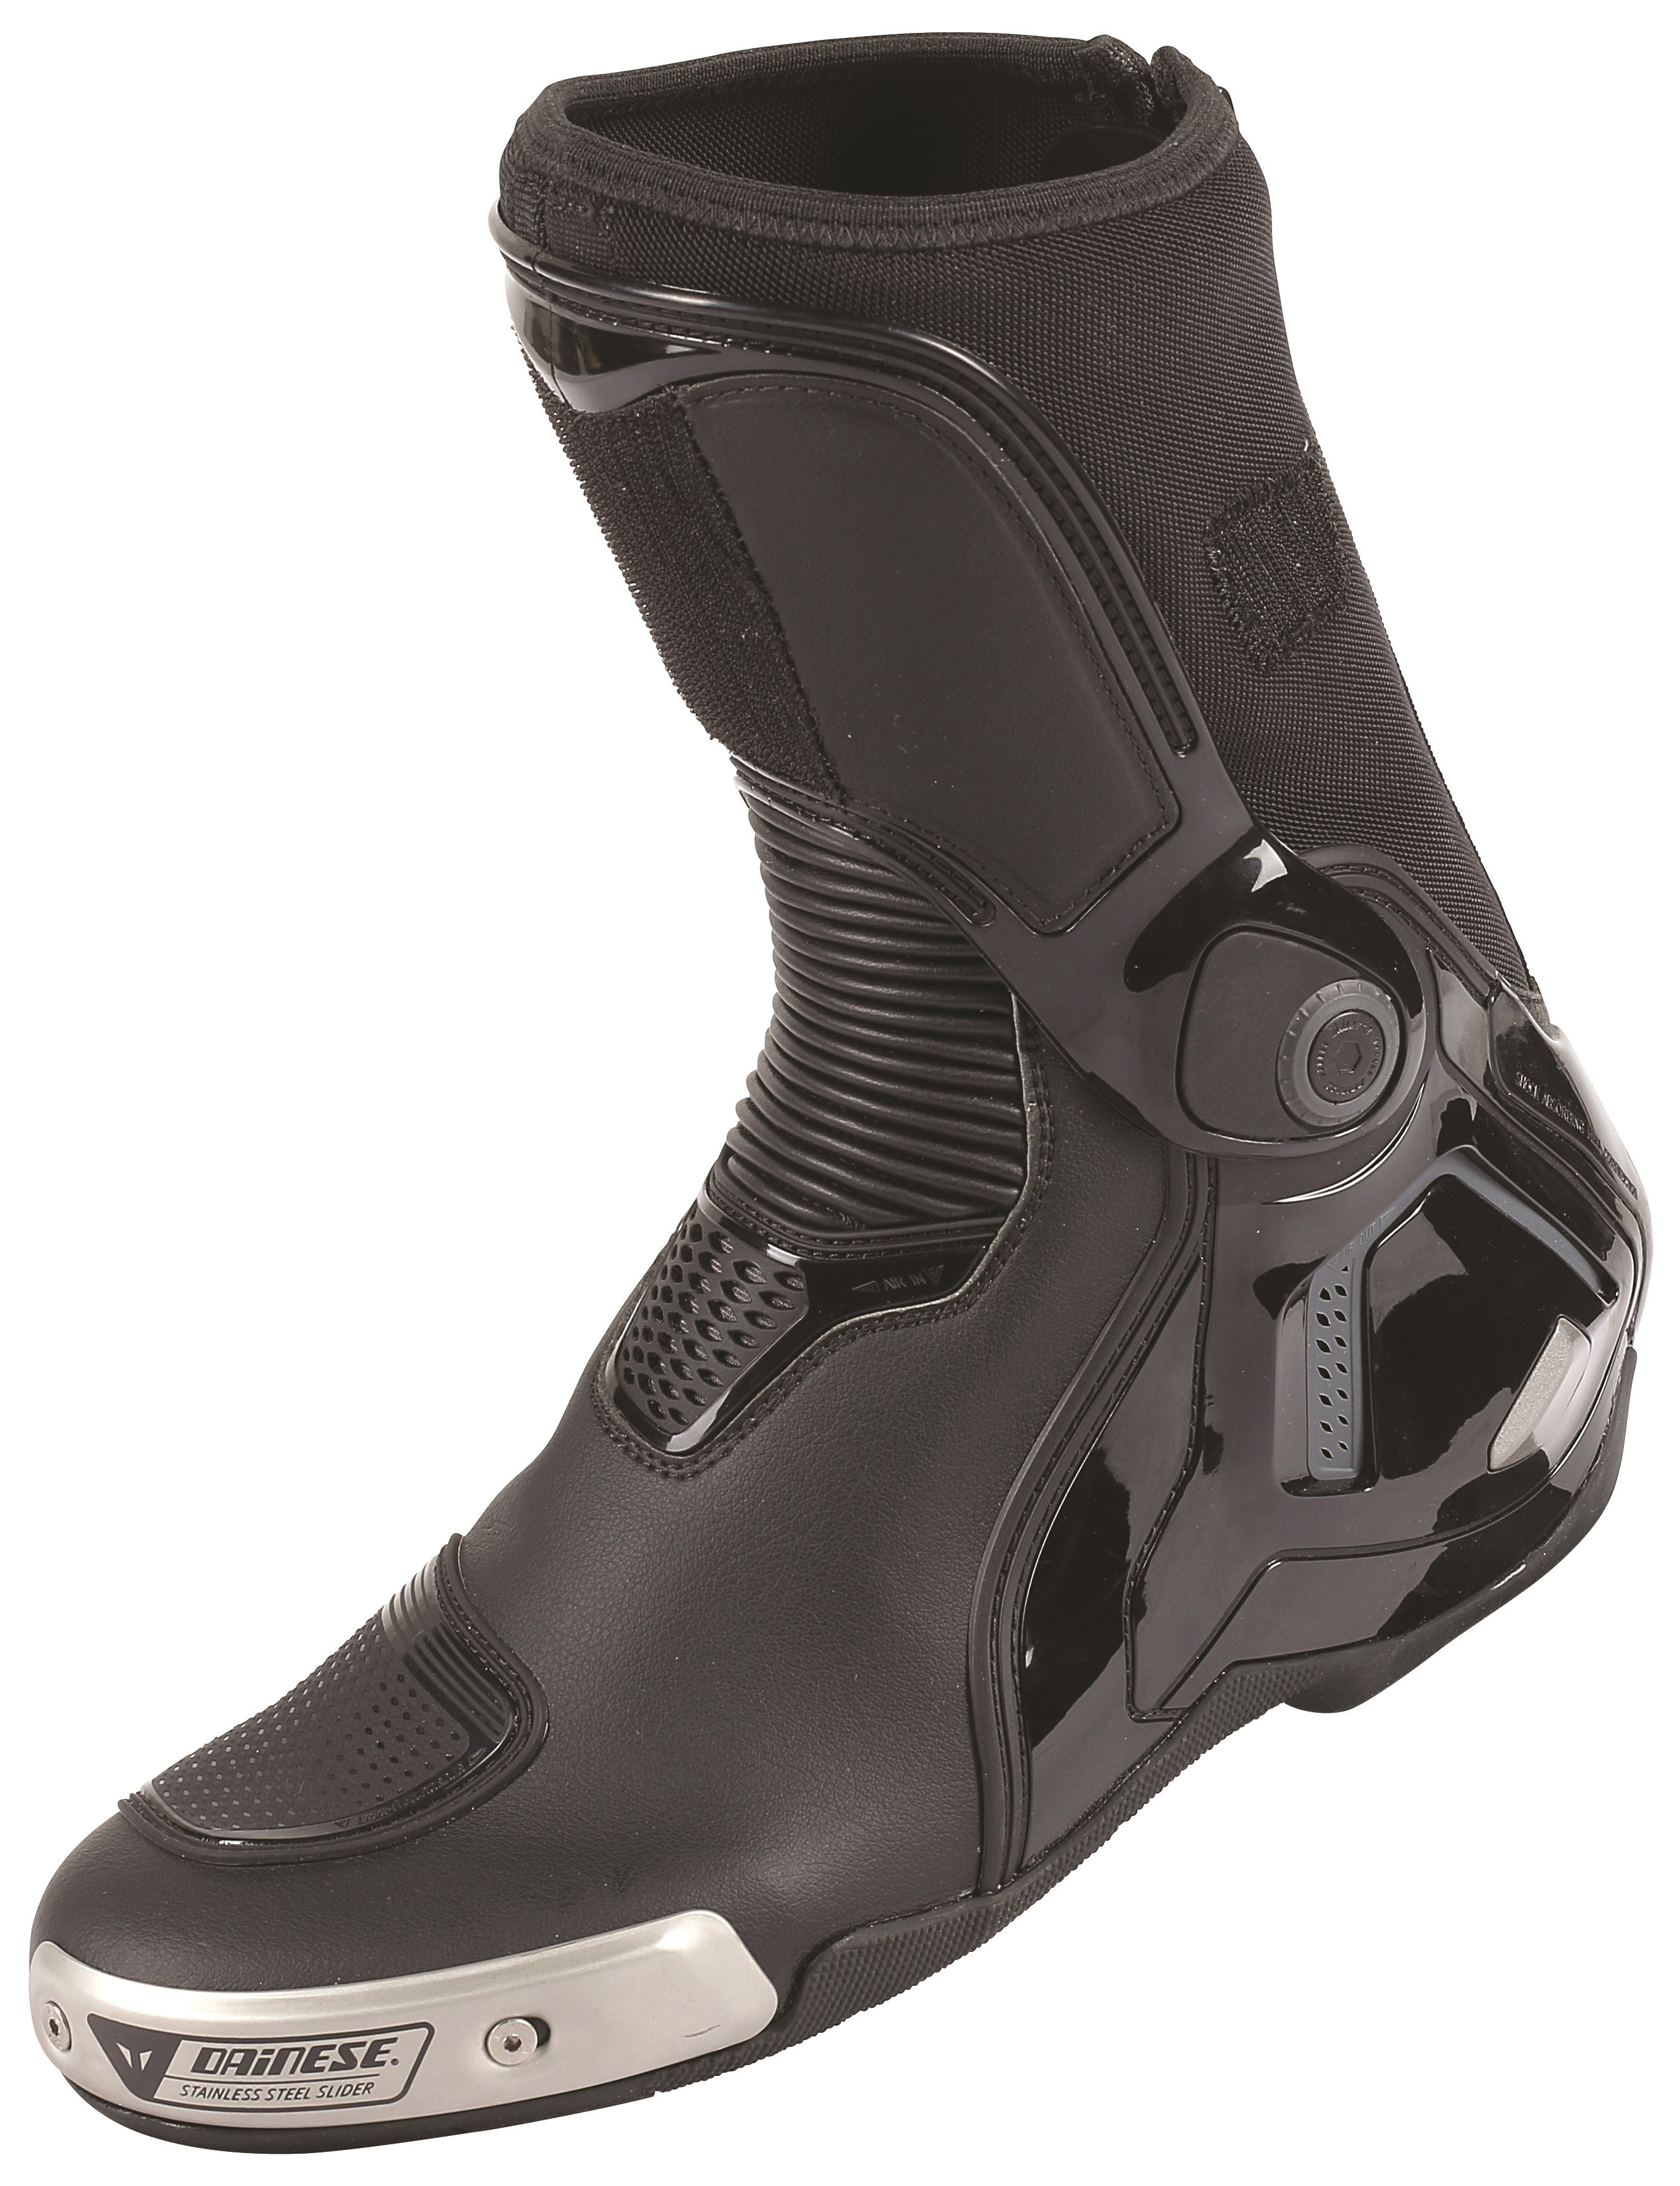 Stivali Moto Dainese Racing Torque Out RS Nero Antracite